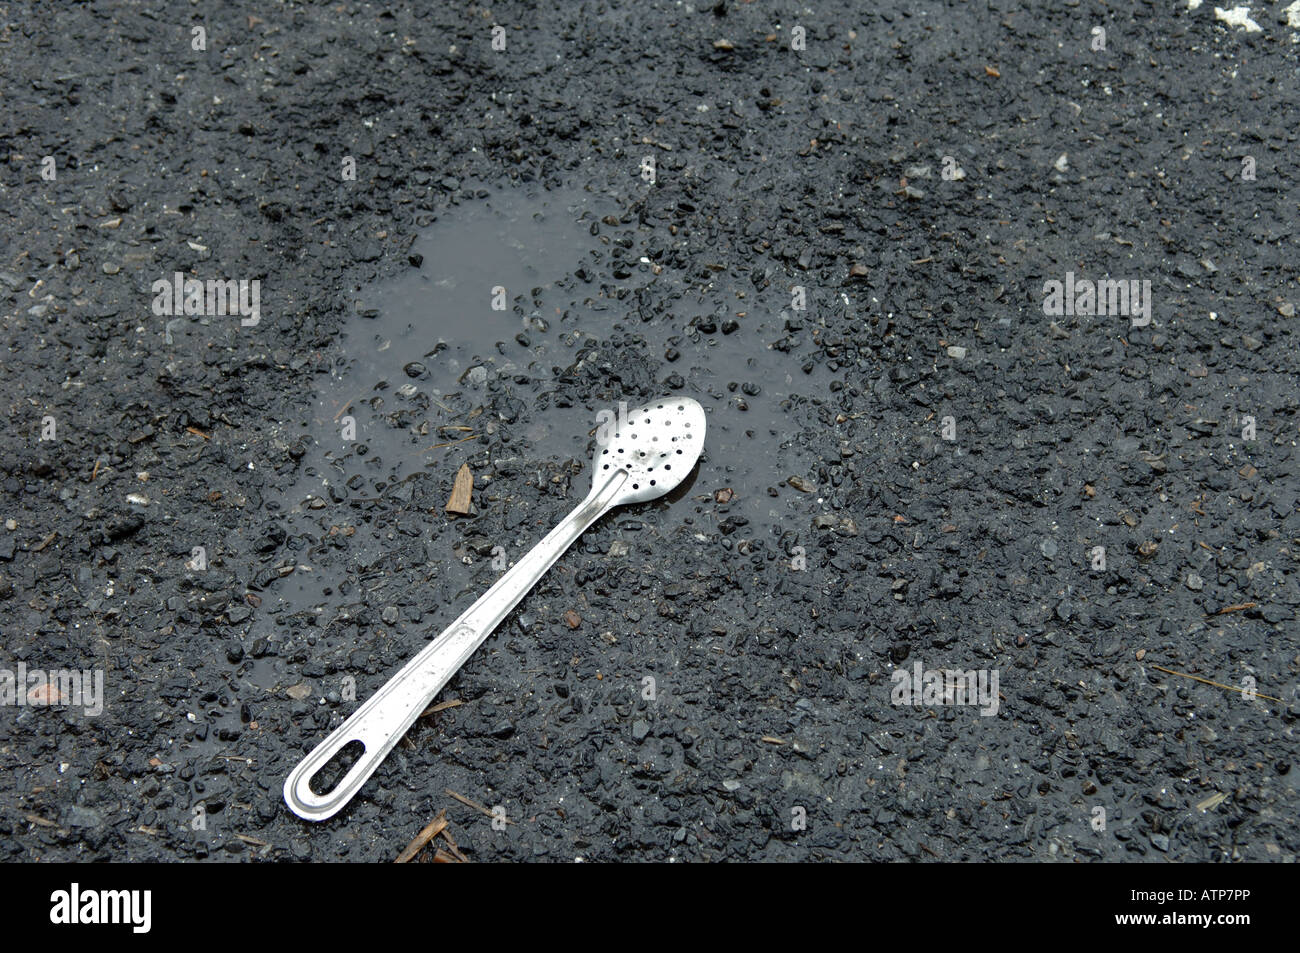 A flattened spoon in the roadway on the Bowery in NYC home of many restaurant suppliers - Stock Image